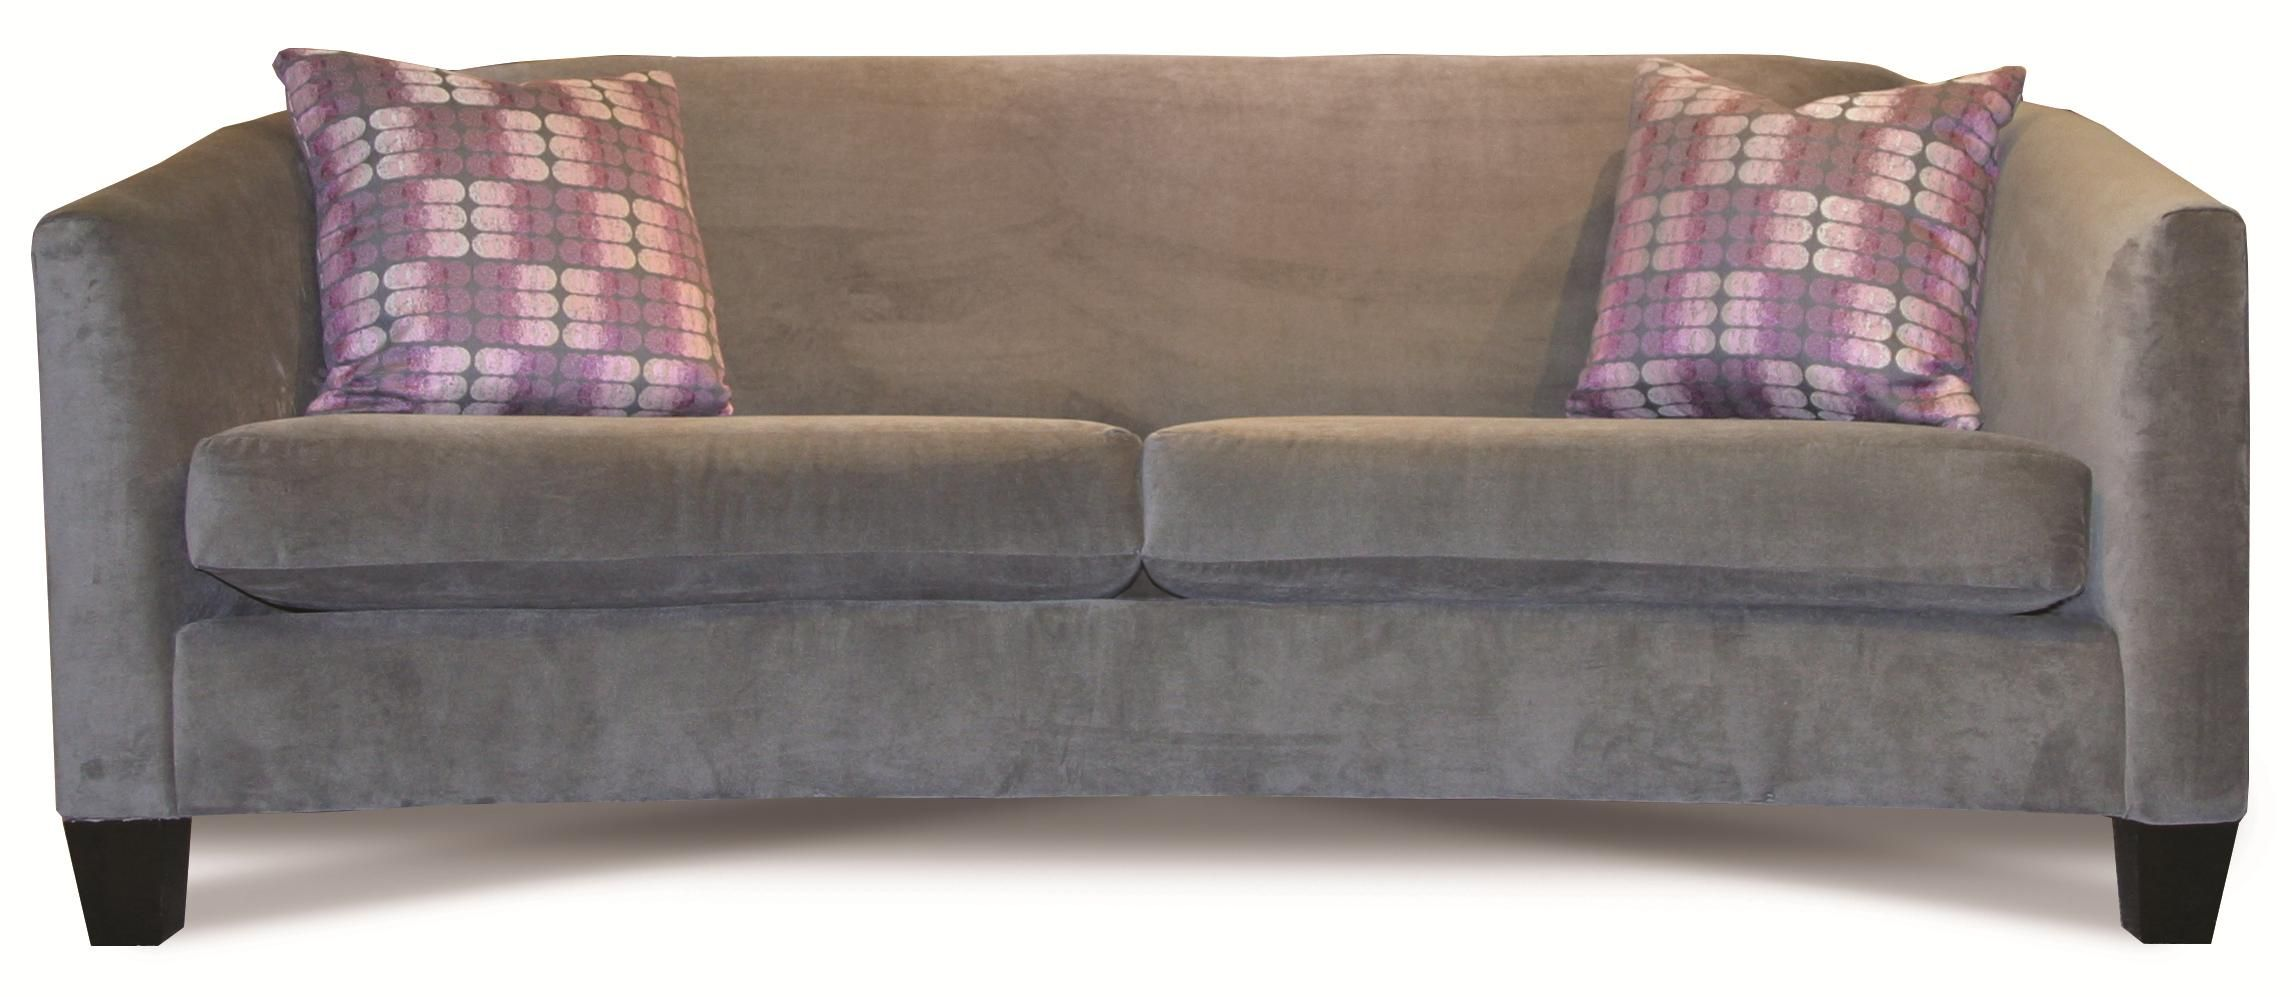 Rowe Easley Contemporary Sofa With Flared Track Arms And Wood Feet   Becker  Furniture World